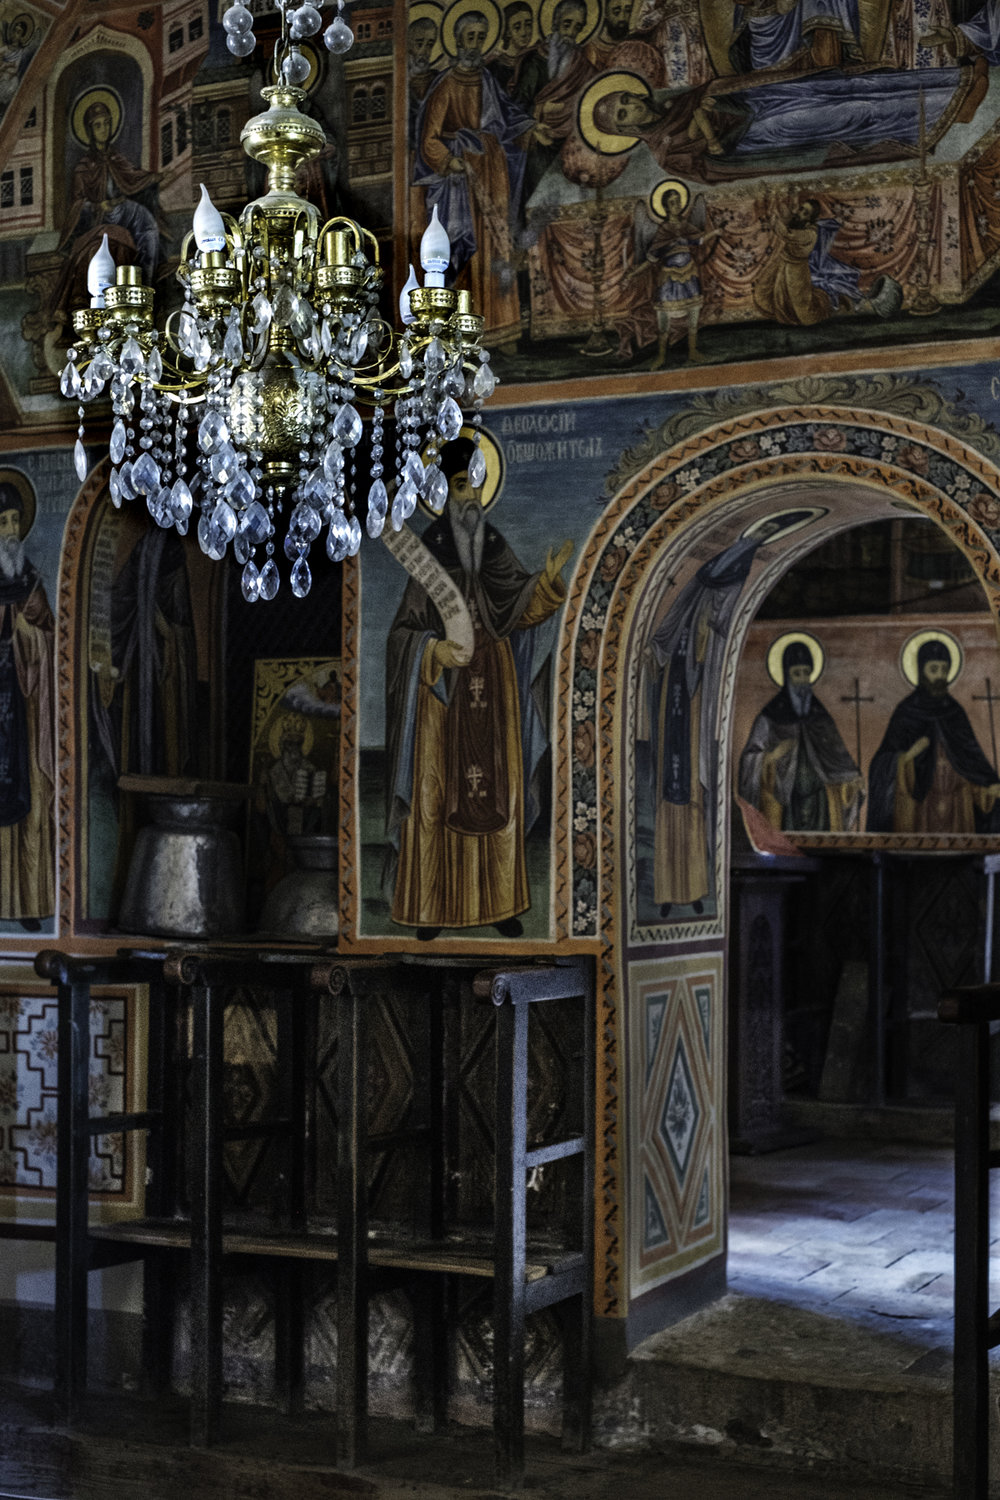 Iconostasis and Chandelier, Preobrazhenski Monastery